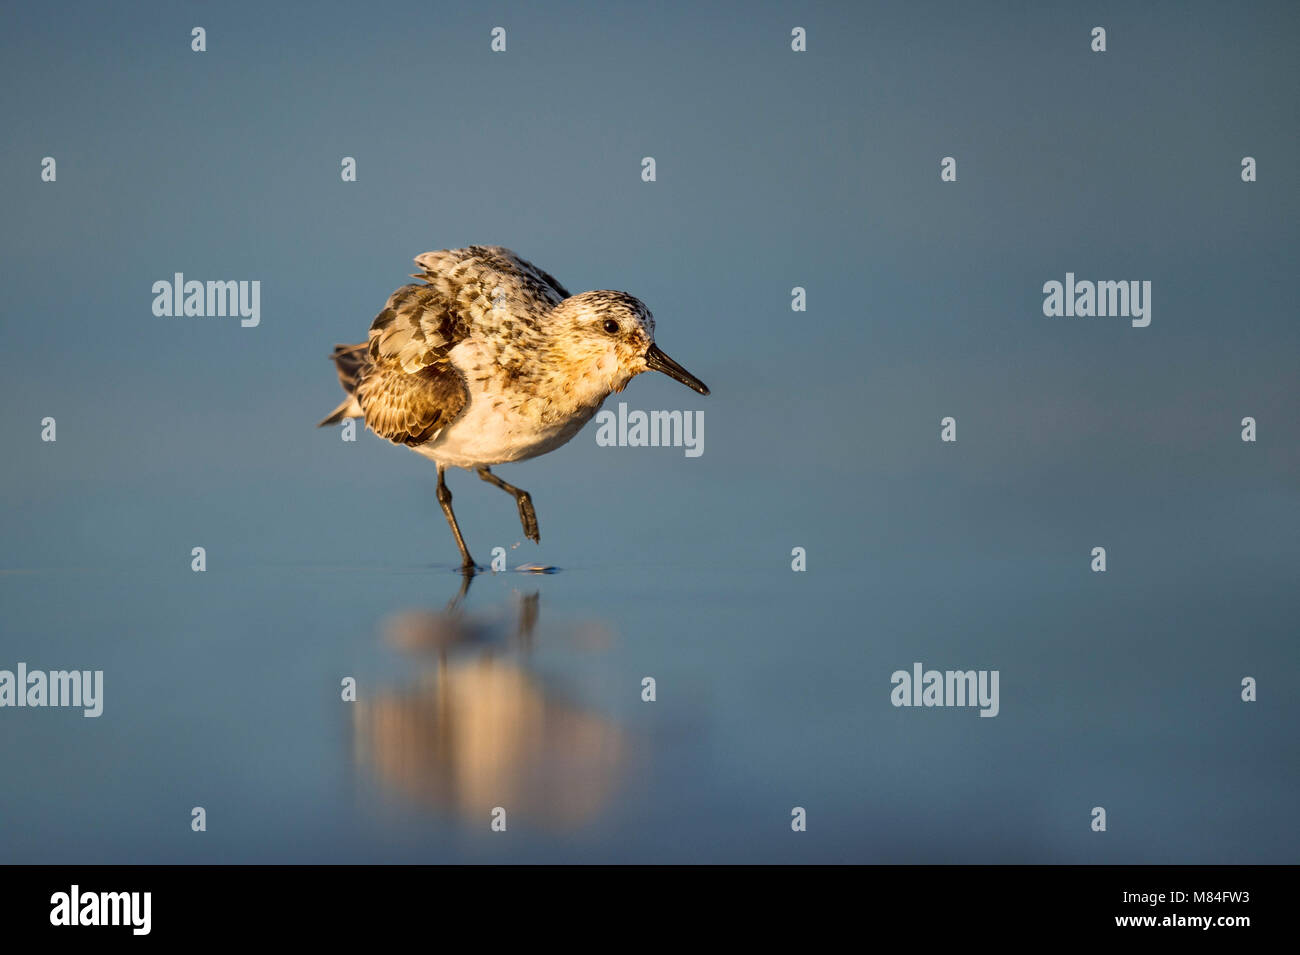 Keeping The Water Out Stock Photos Keeping The Water Out Stock Images Alamy